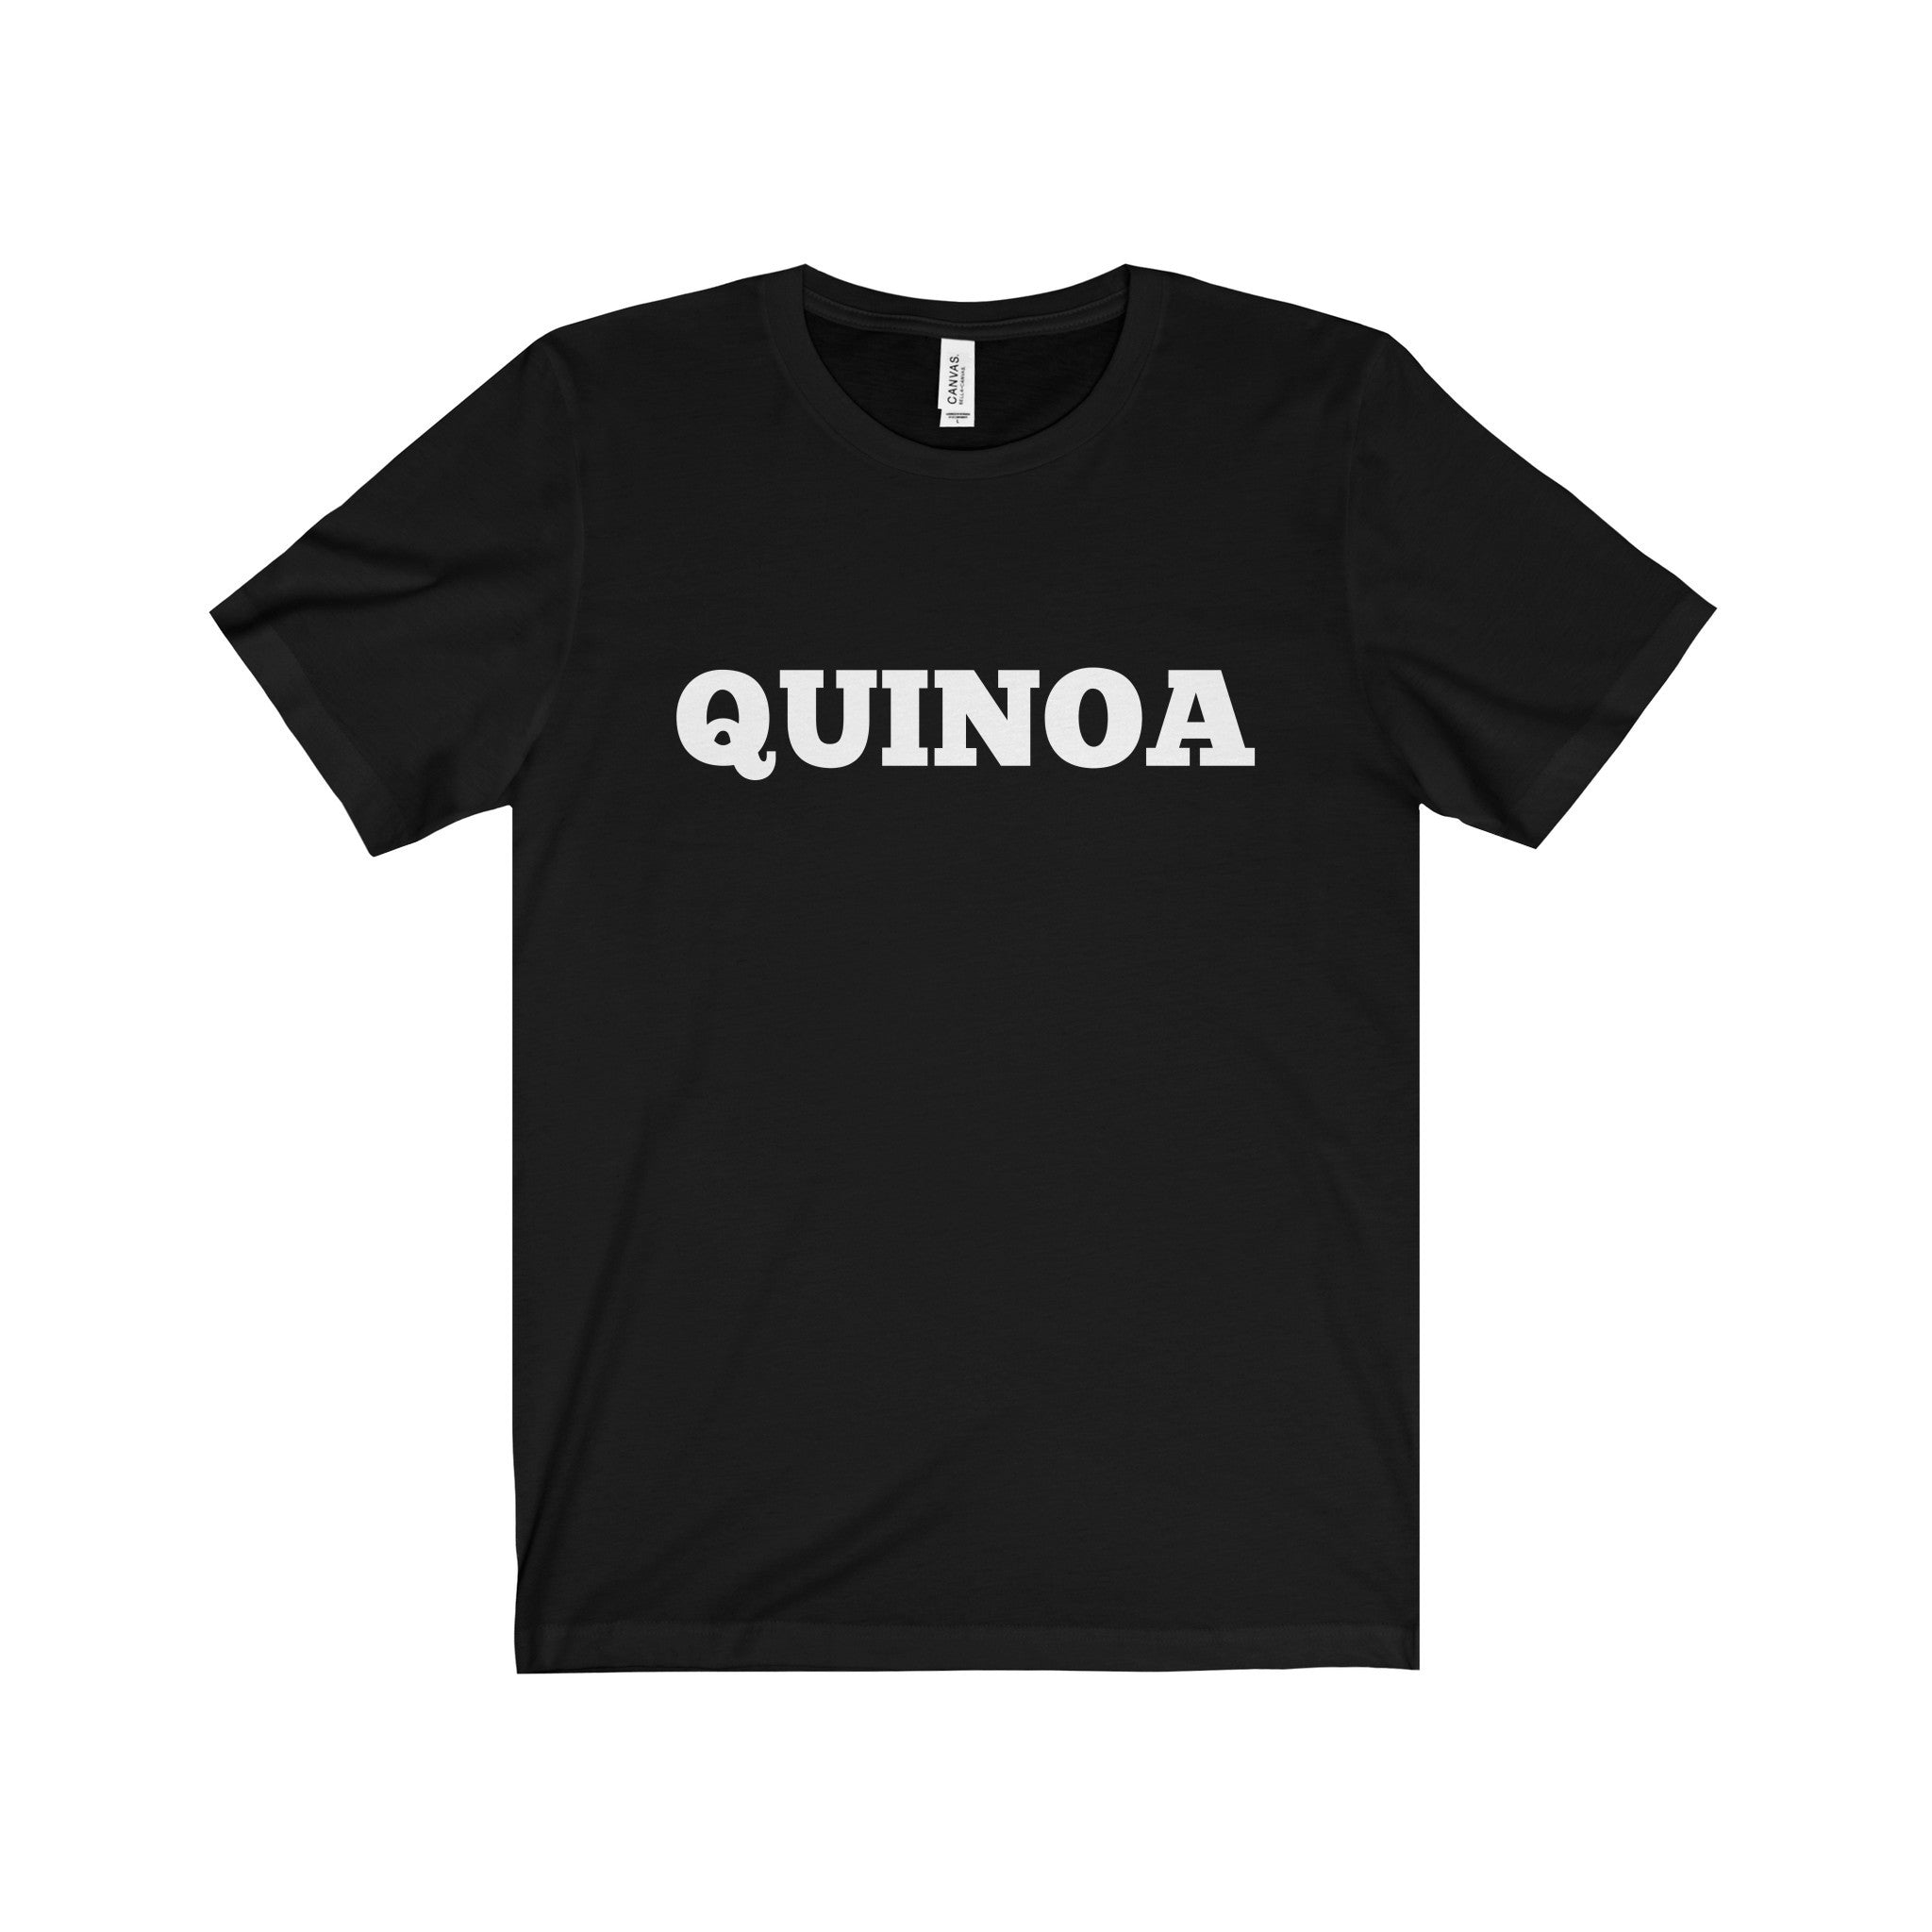 QUINOA White Letter Tee (7 colors available)